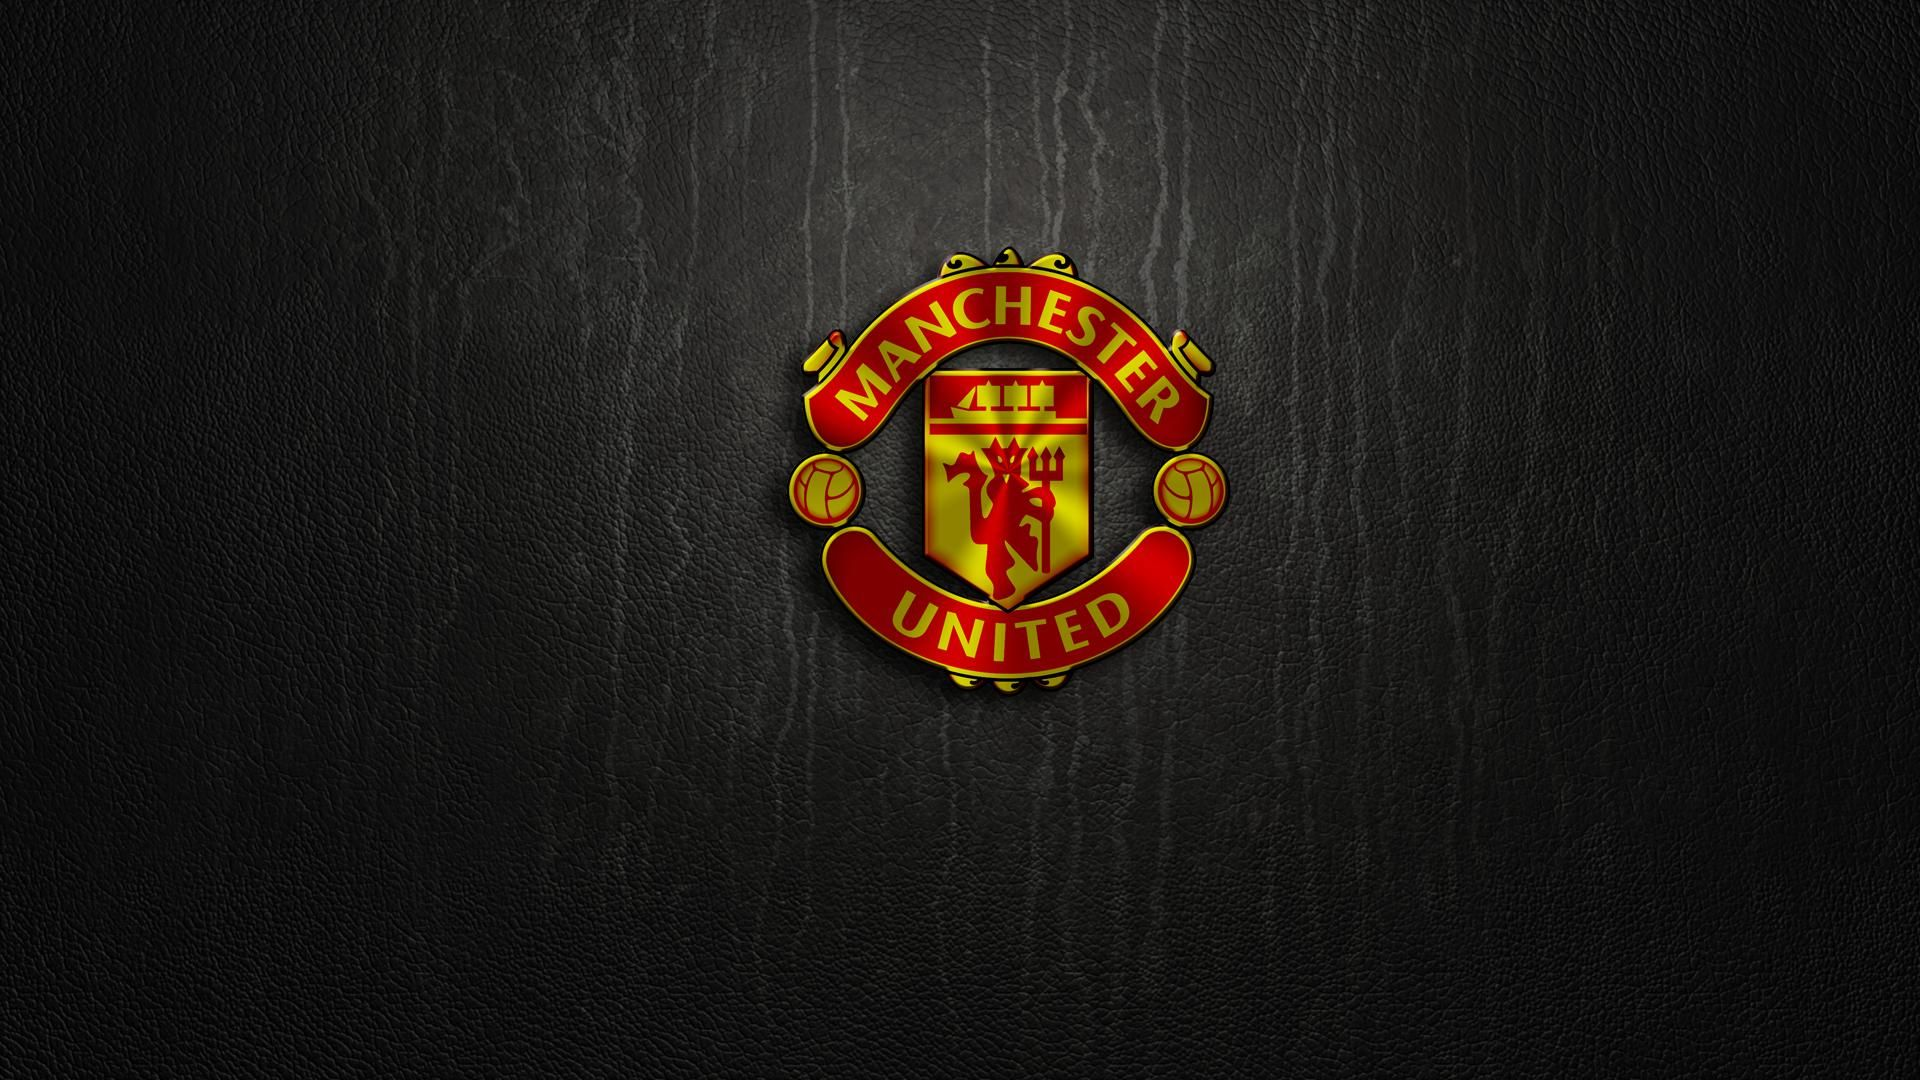 manchester united logo high def hd wallpaper manchester united wallpaper manchester united logo manchester logo manchester united logo high def hd